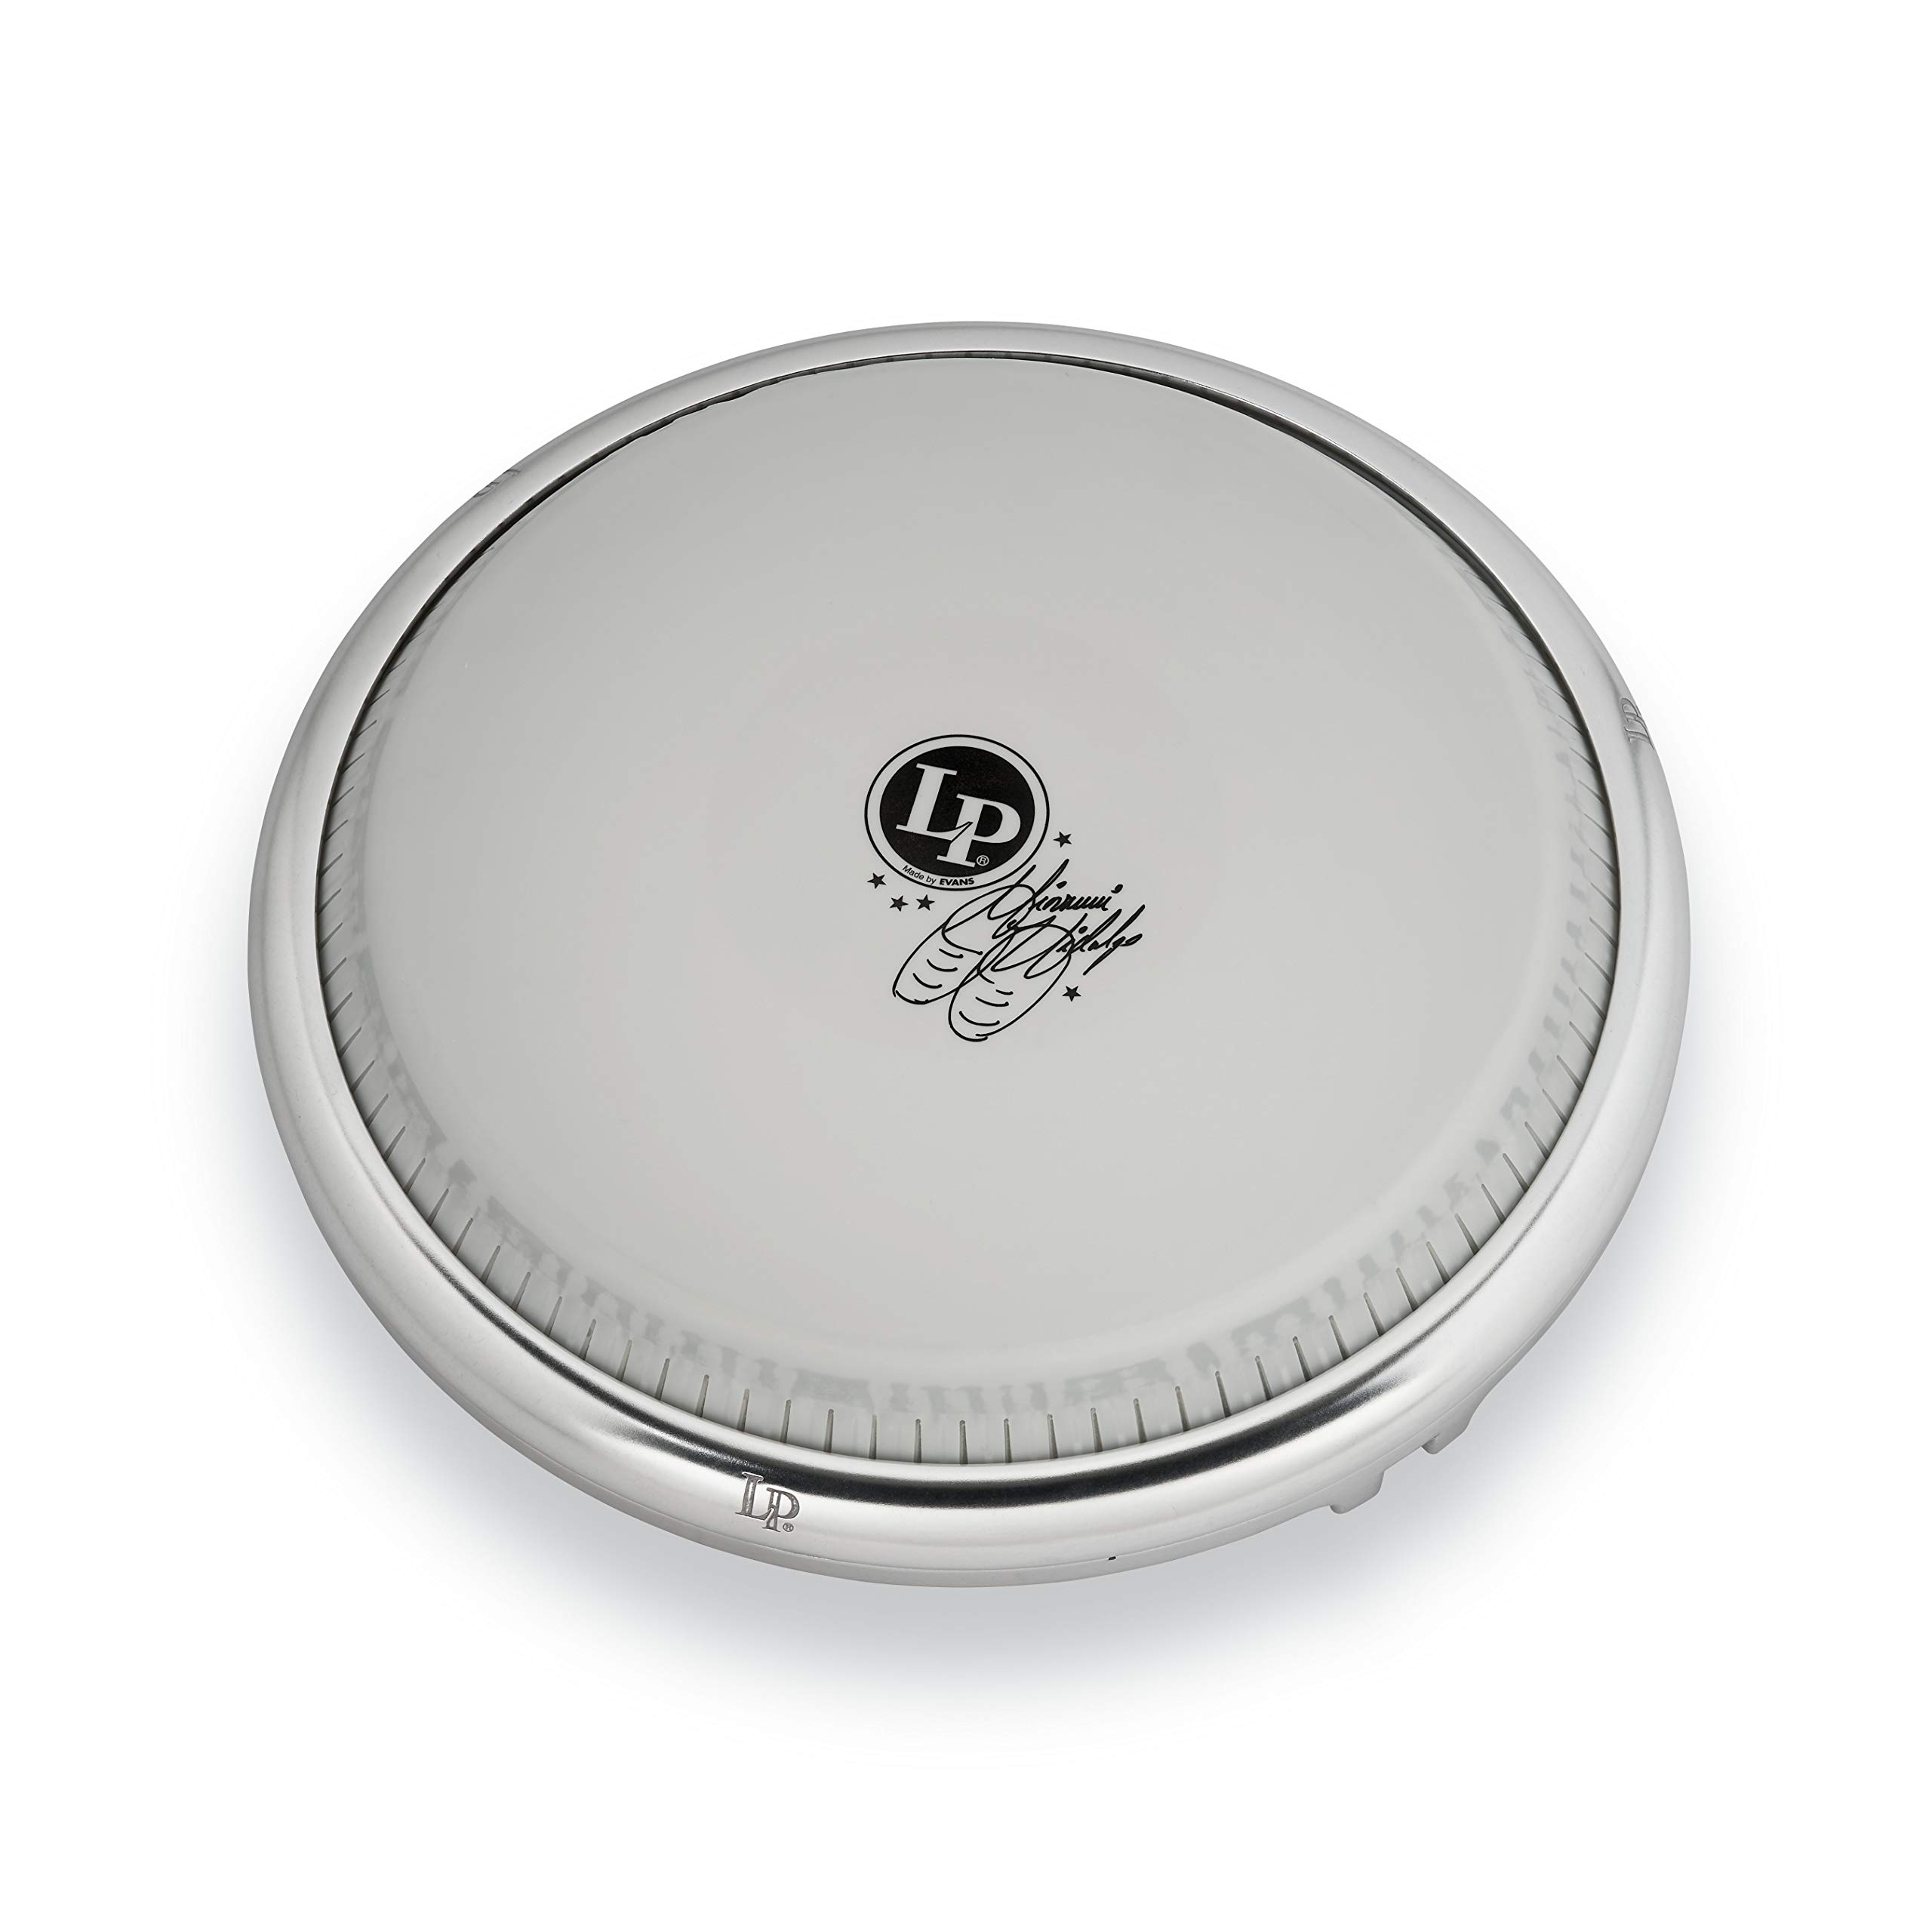 Latin Percussion Compact Conga, 11.75-inch by Latin Percussion